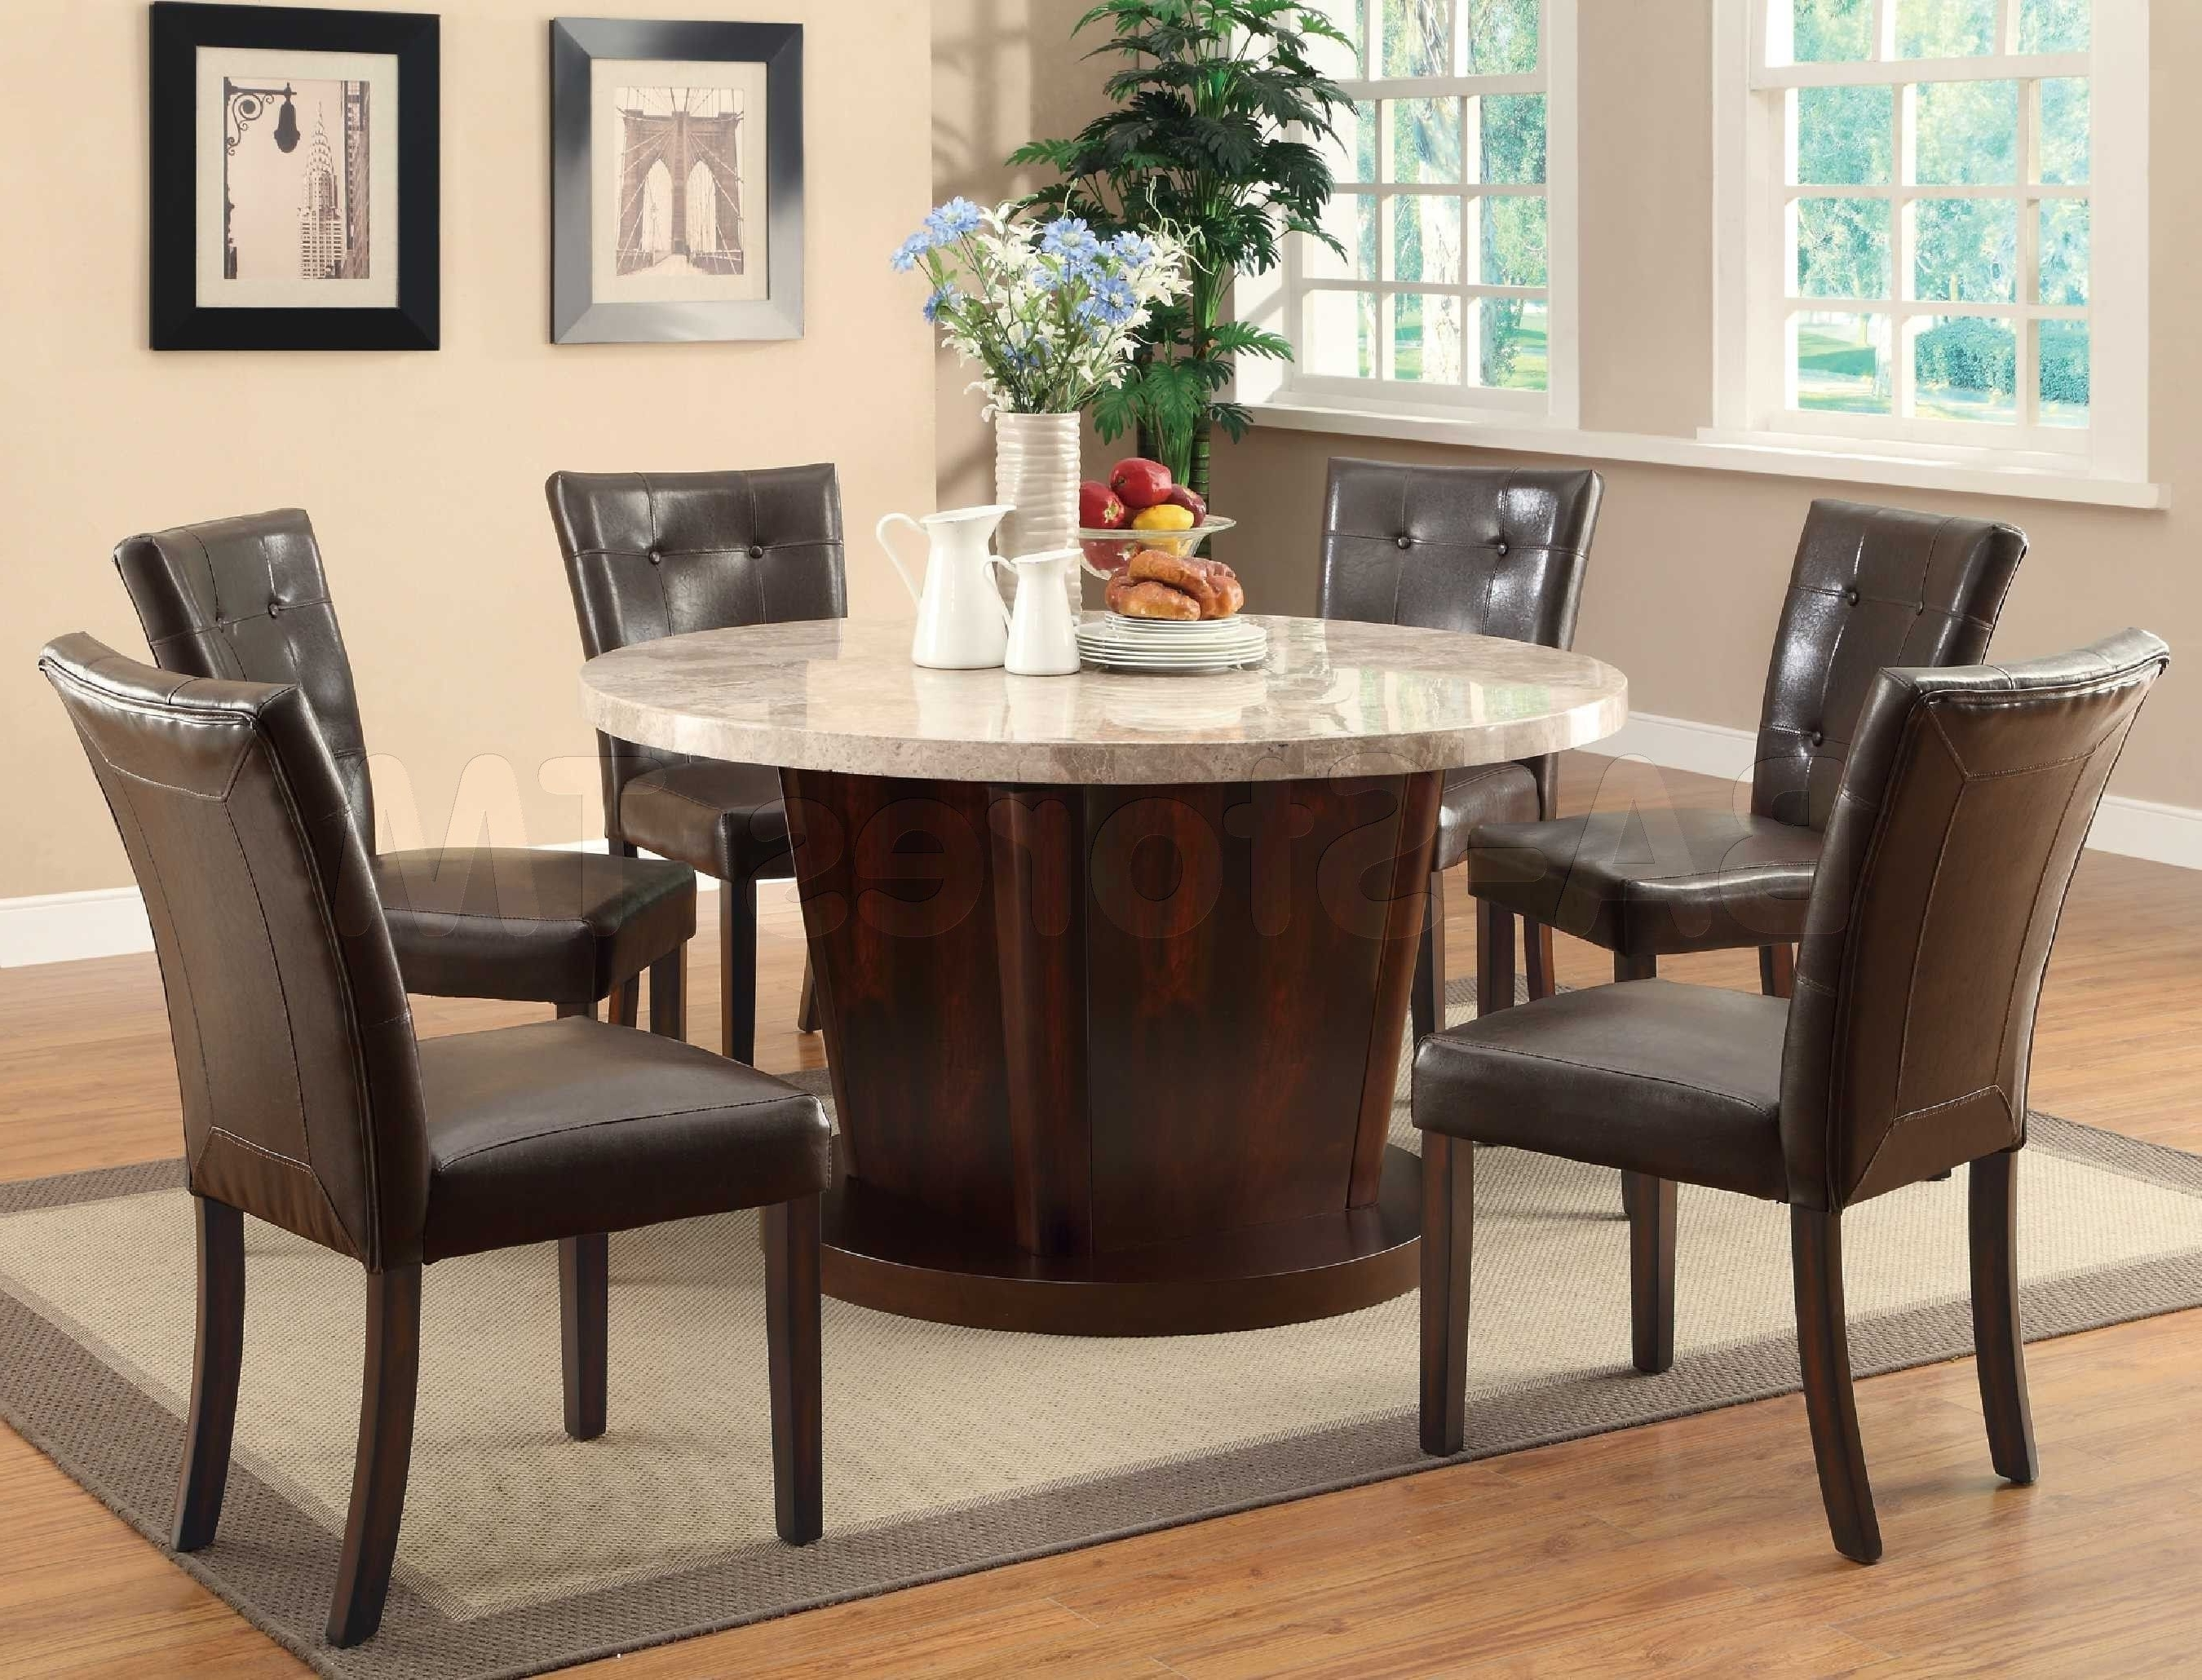 Low Cost Dining Room Tables (View 8 of 25)